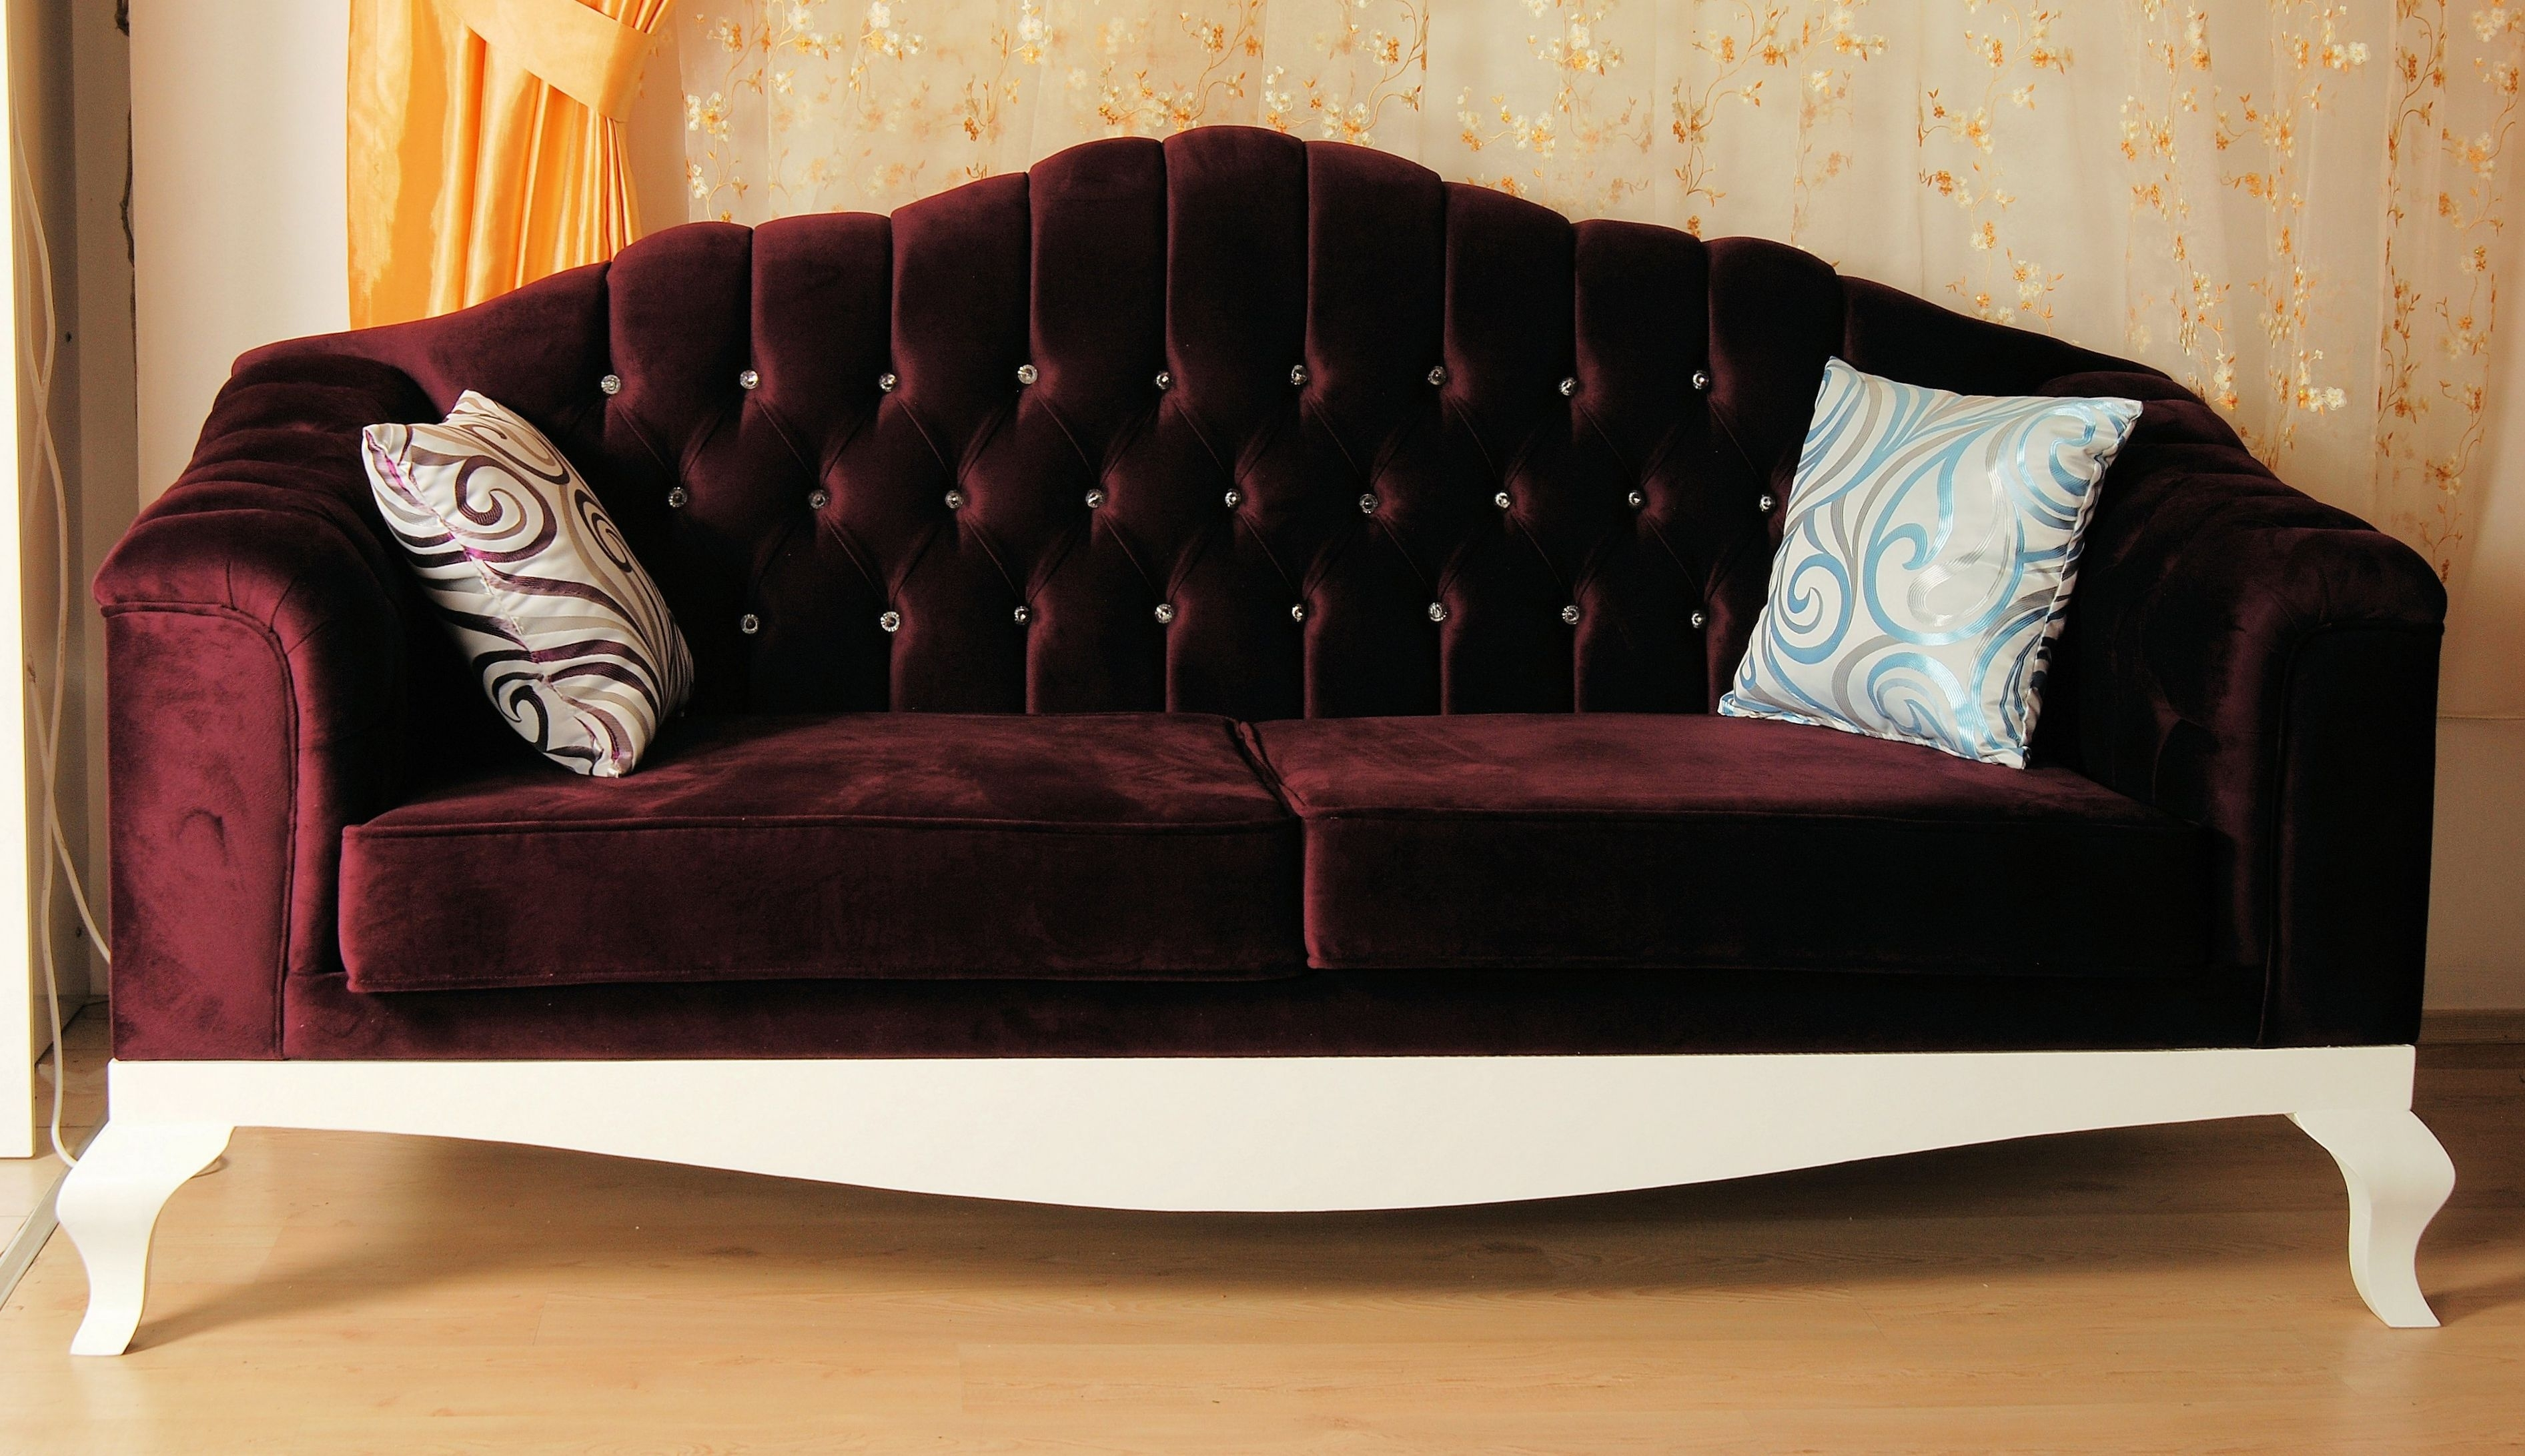 Sofa Design: Personal Luxury Sofas Taste And Style May Be Classic In Luxury Sofas (Image 9 of 10)